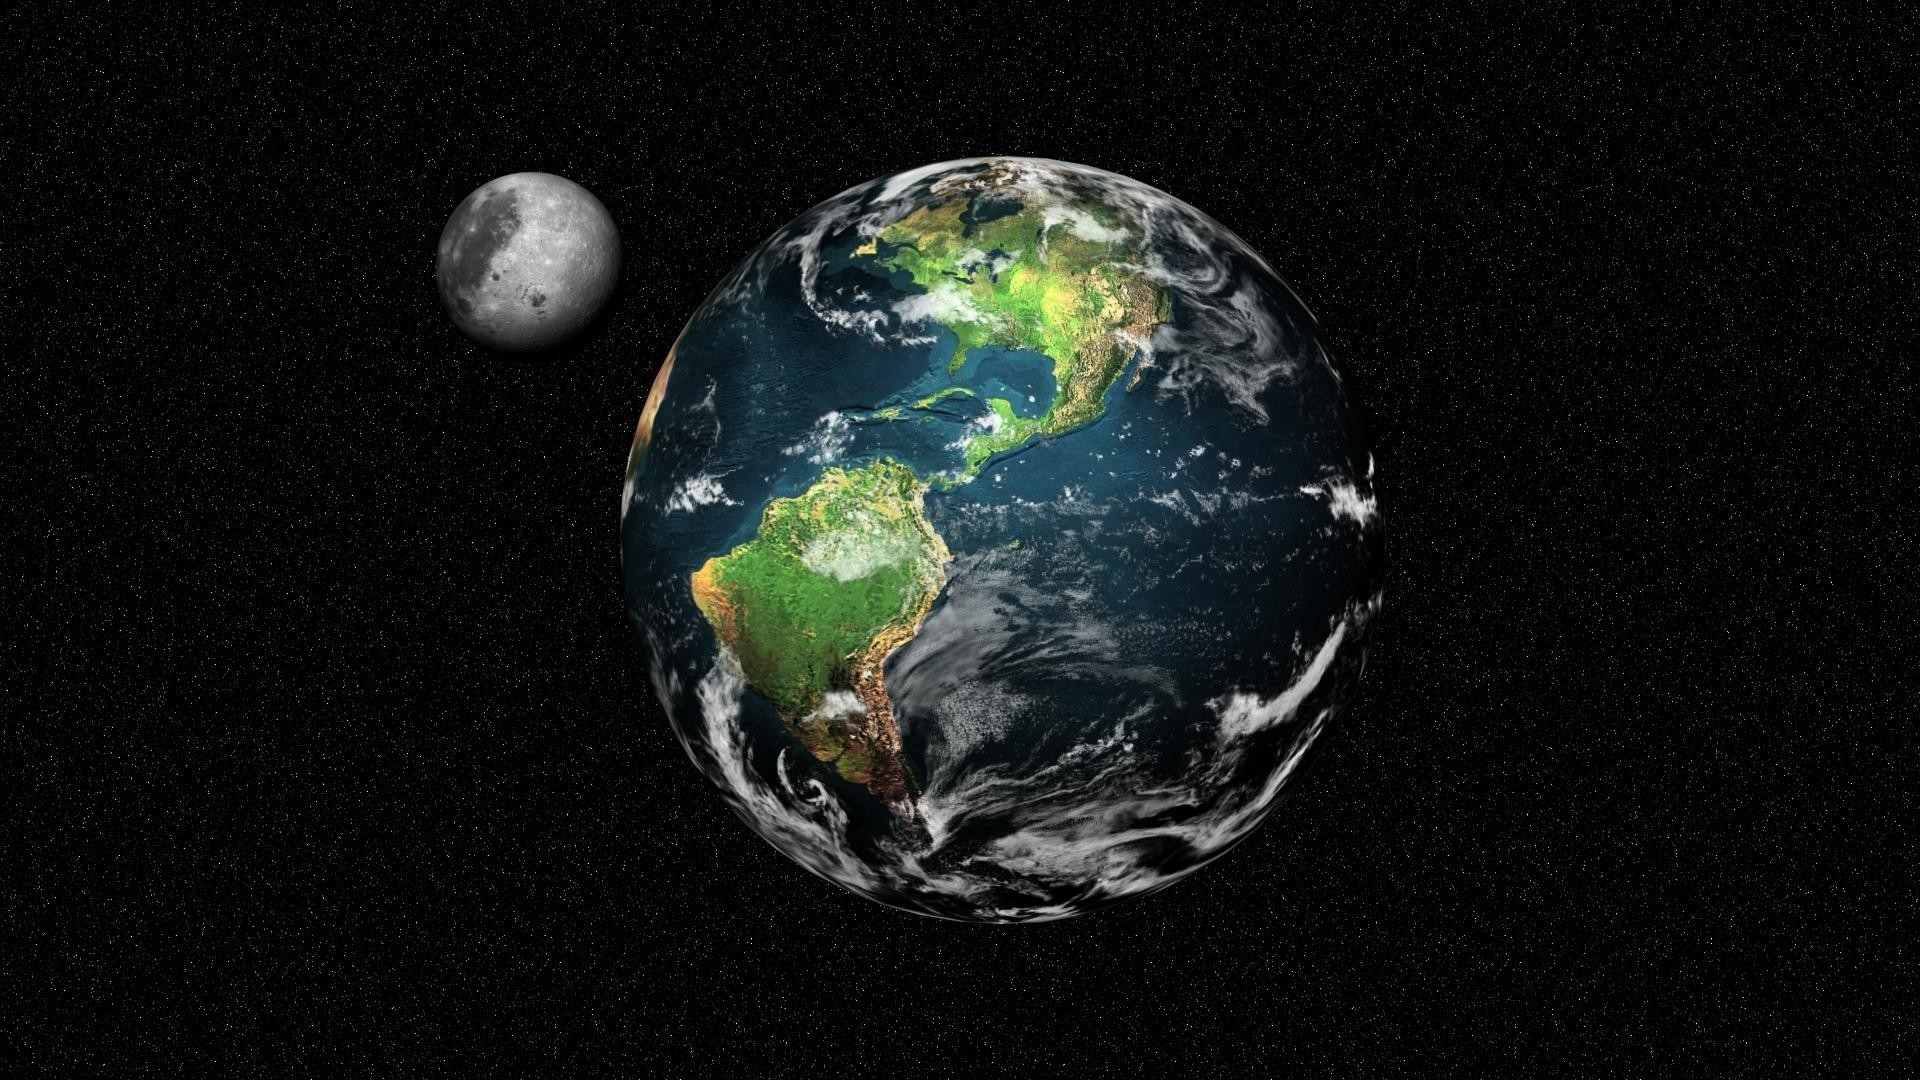 Moon and Earth Wallpapers HD